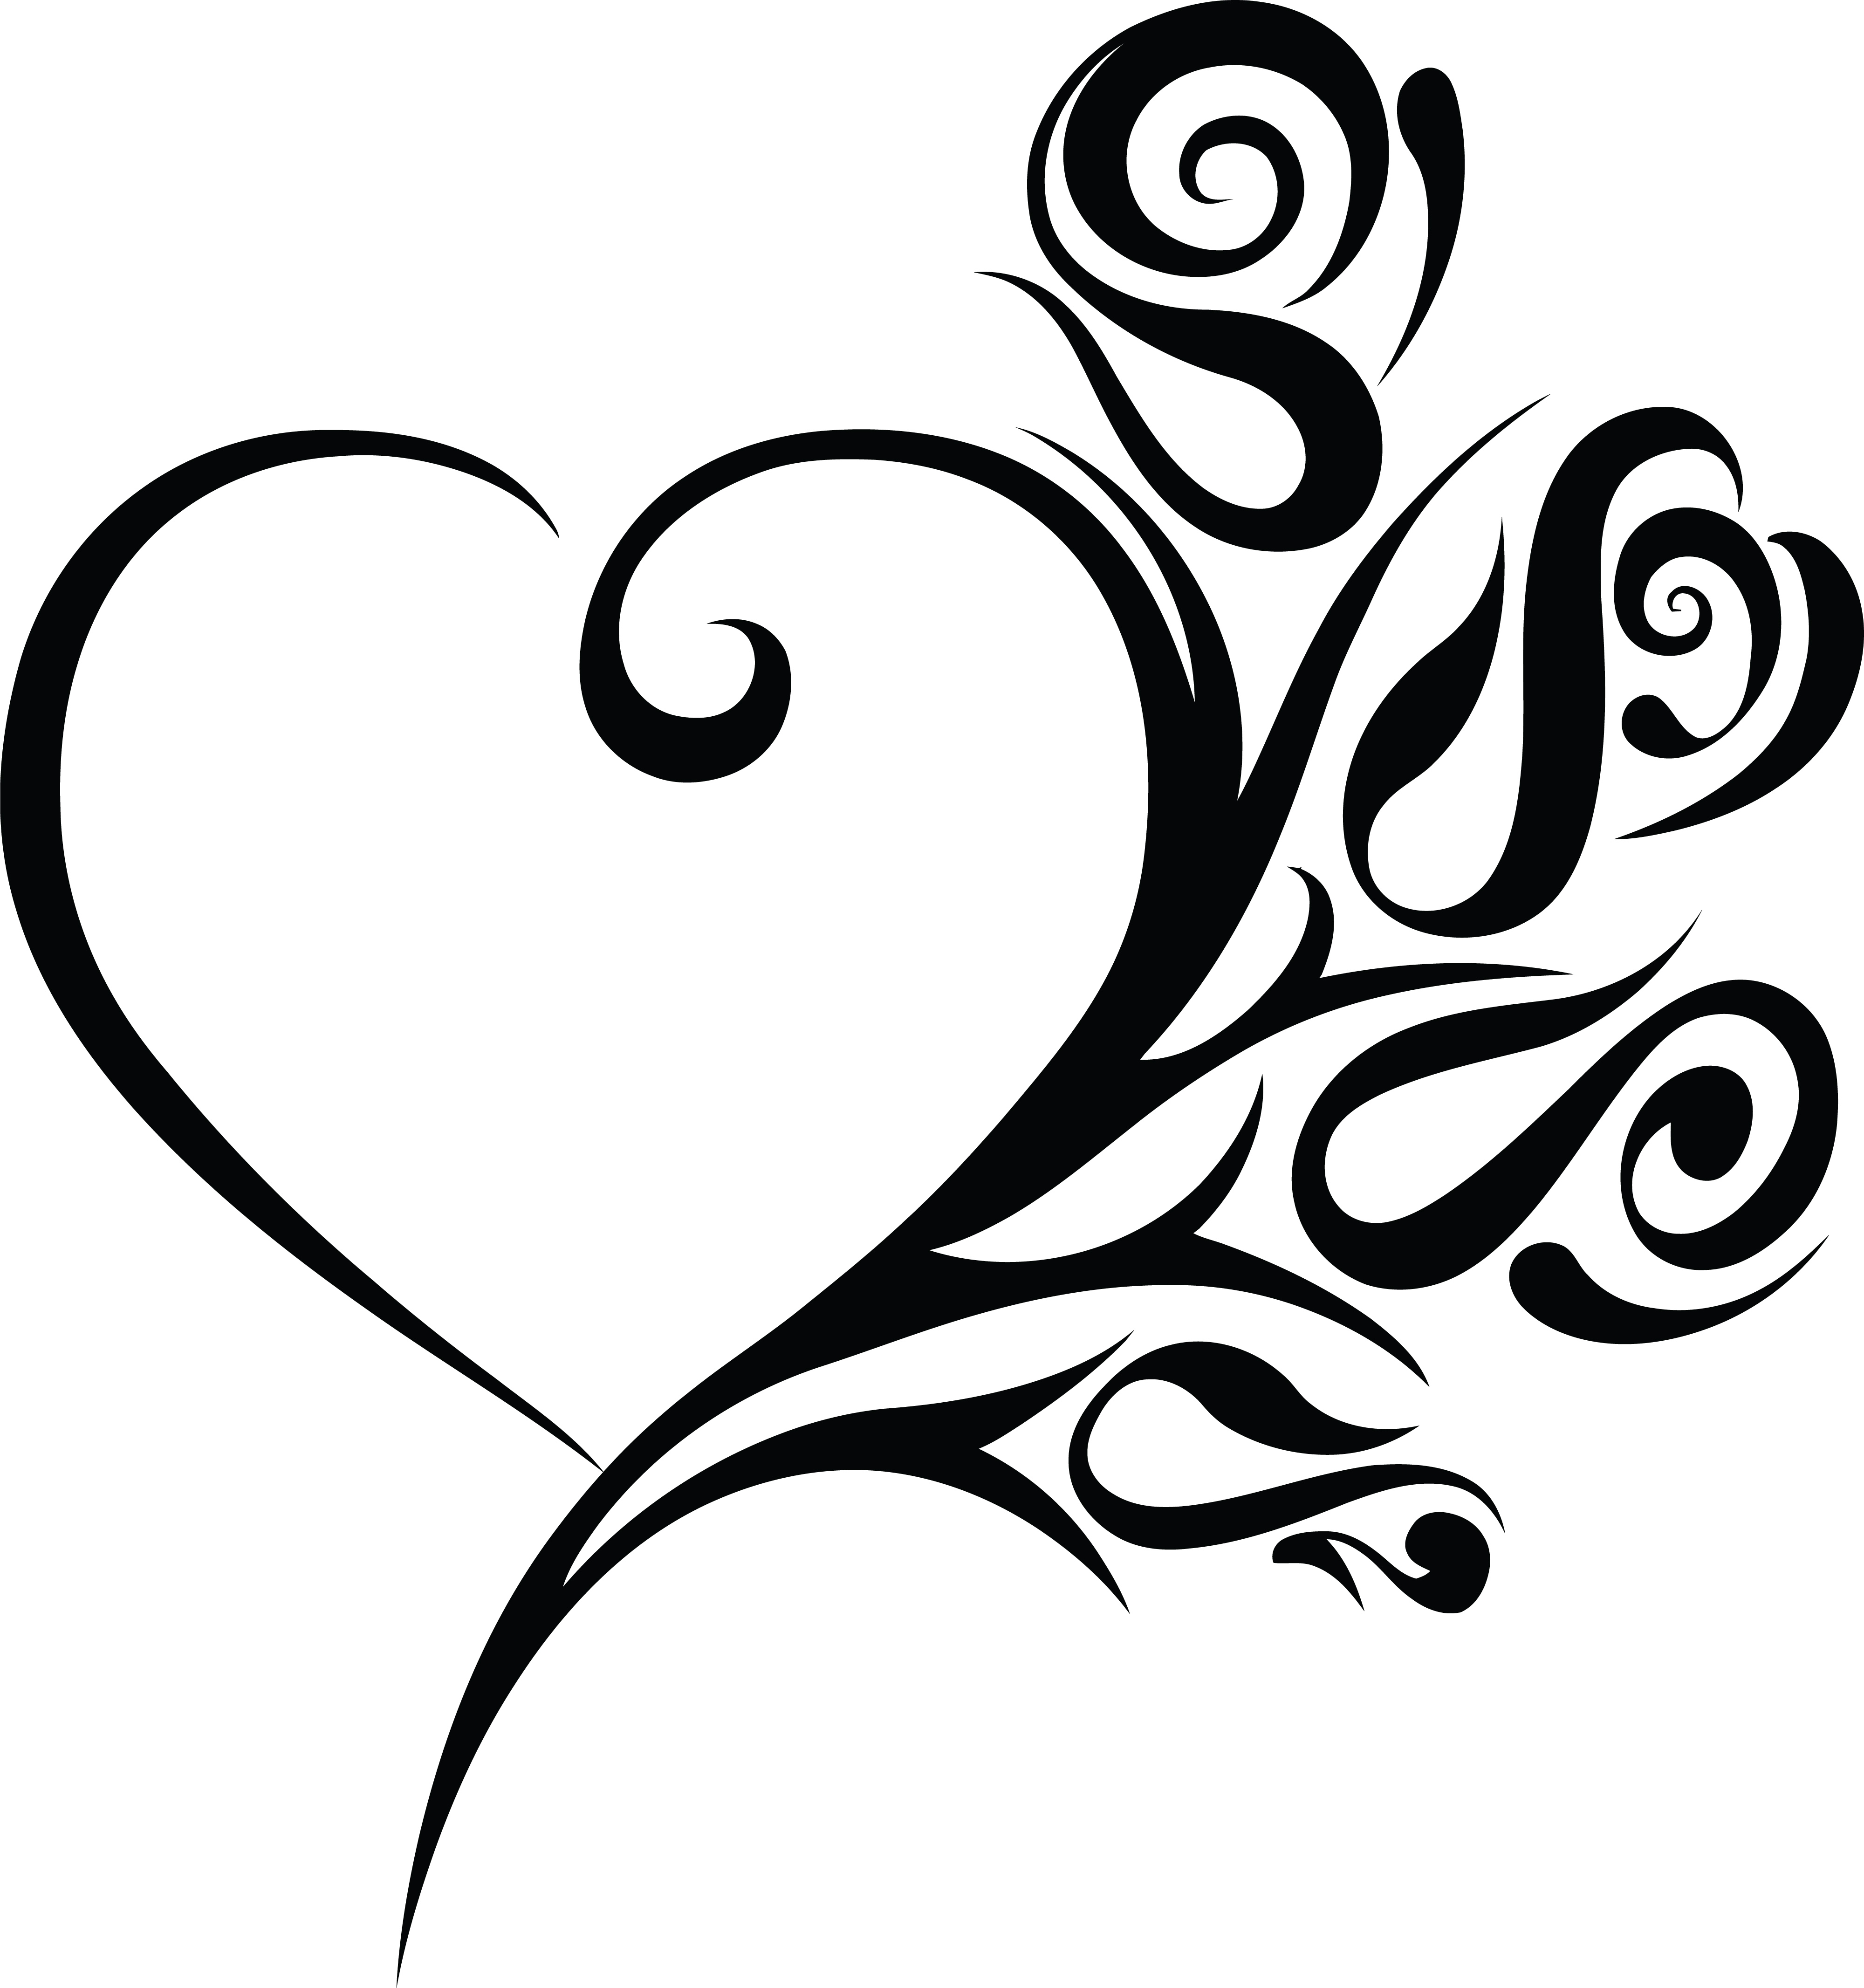 Free Clipart of a heart wedding frame with black and white tribal roses.